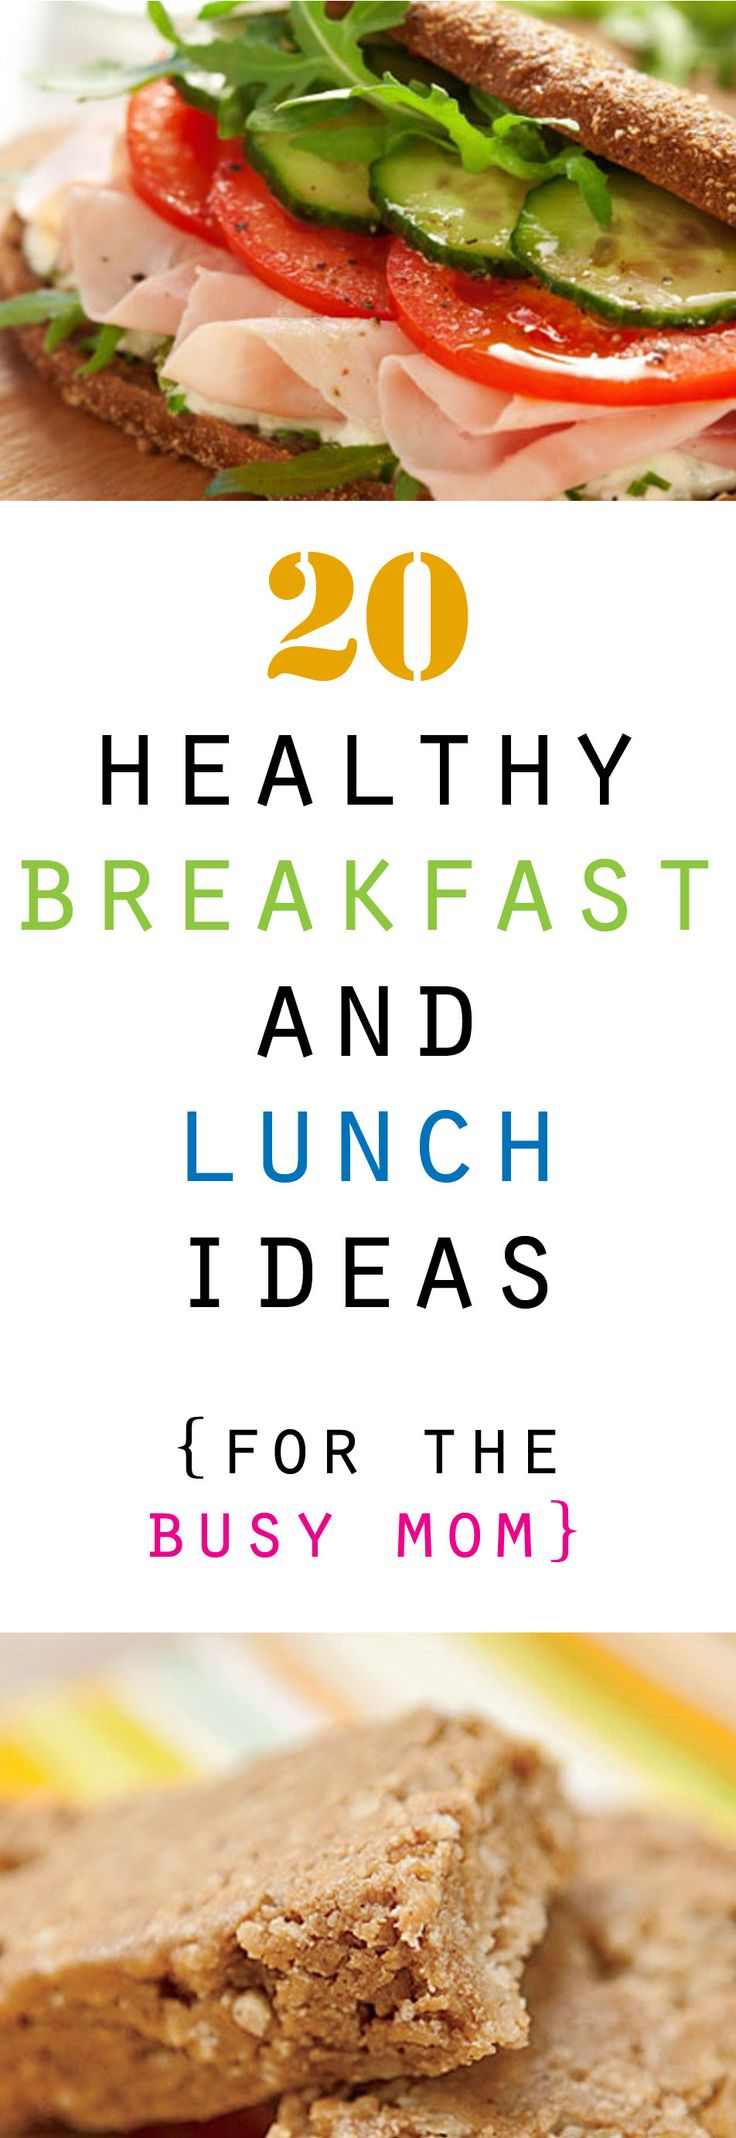 20 Healthy Breakfast and Lunch Ideas. Download the recipes from here: https://metaboliccookingrecipess.wordpress.com/ #breakfast #recipe